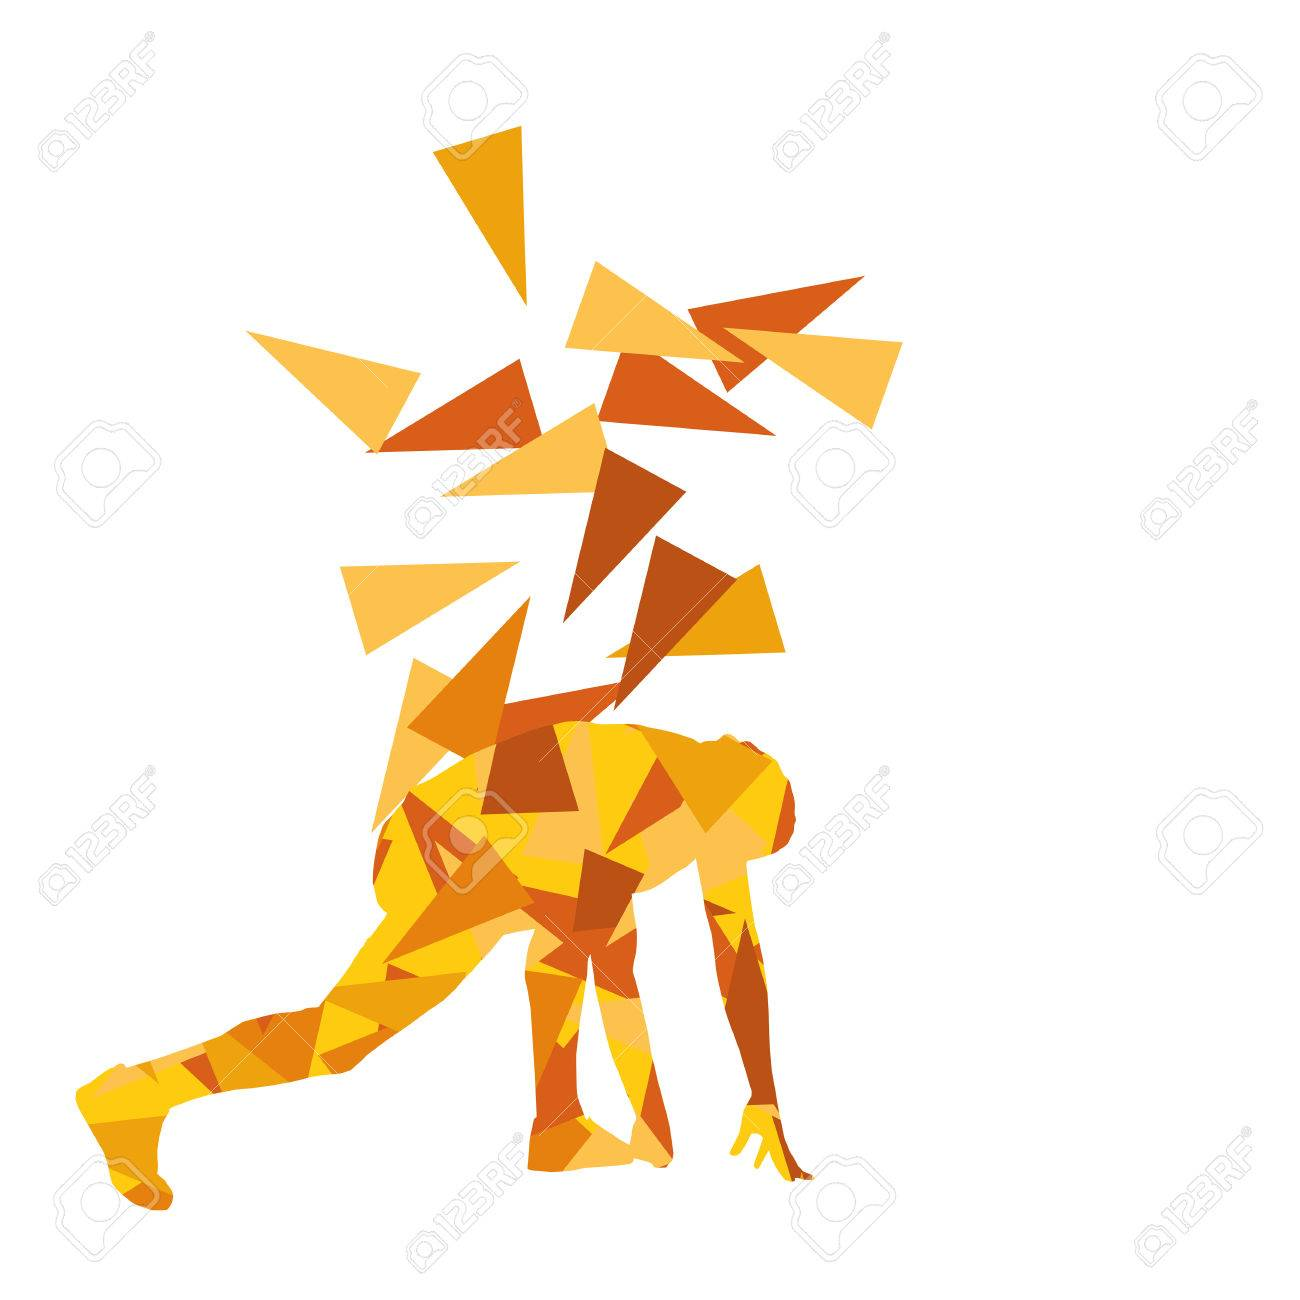 Man Stretching Exercise Fitness Warm Up Vector Background Abstract Illustration Concept Made Of Polygon Fragments Isolated